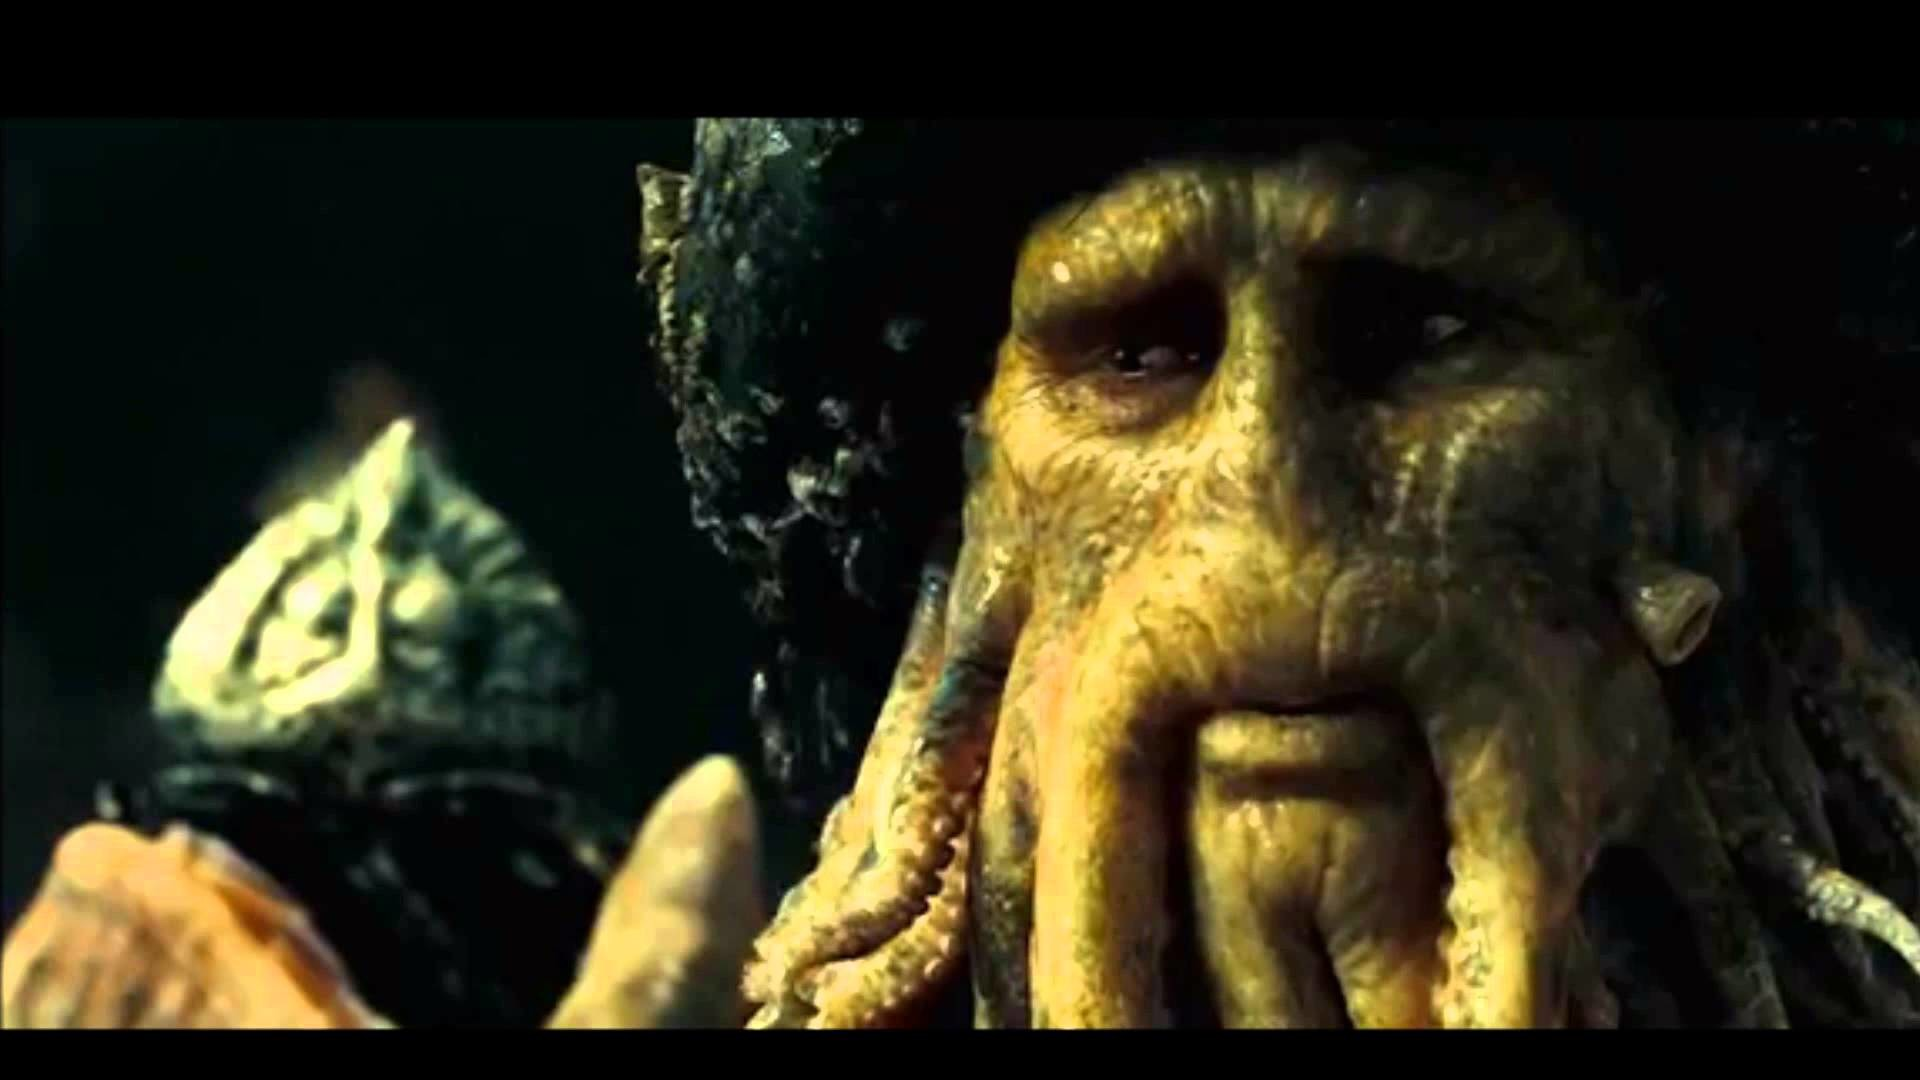 2549575afcf5b 1920x1080 Davy Jones - Music Box (no orchestra) Pirates of the Caribbean -  YouTube